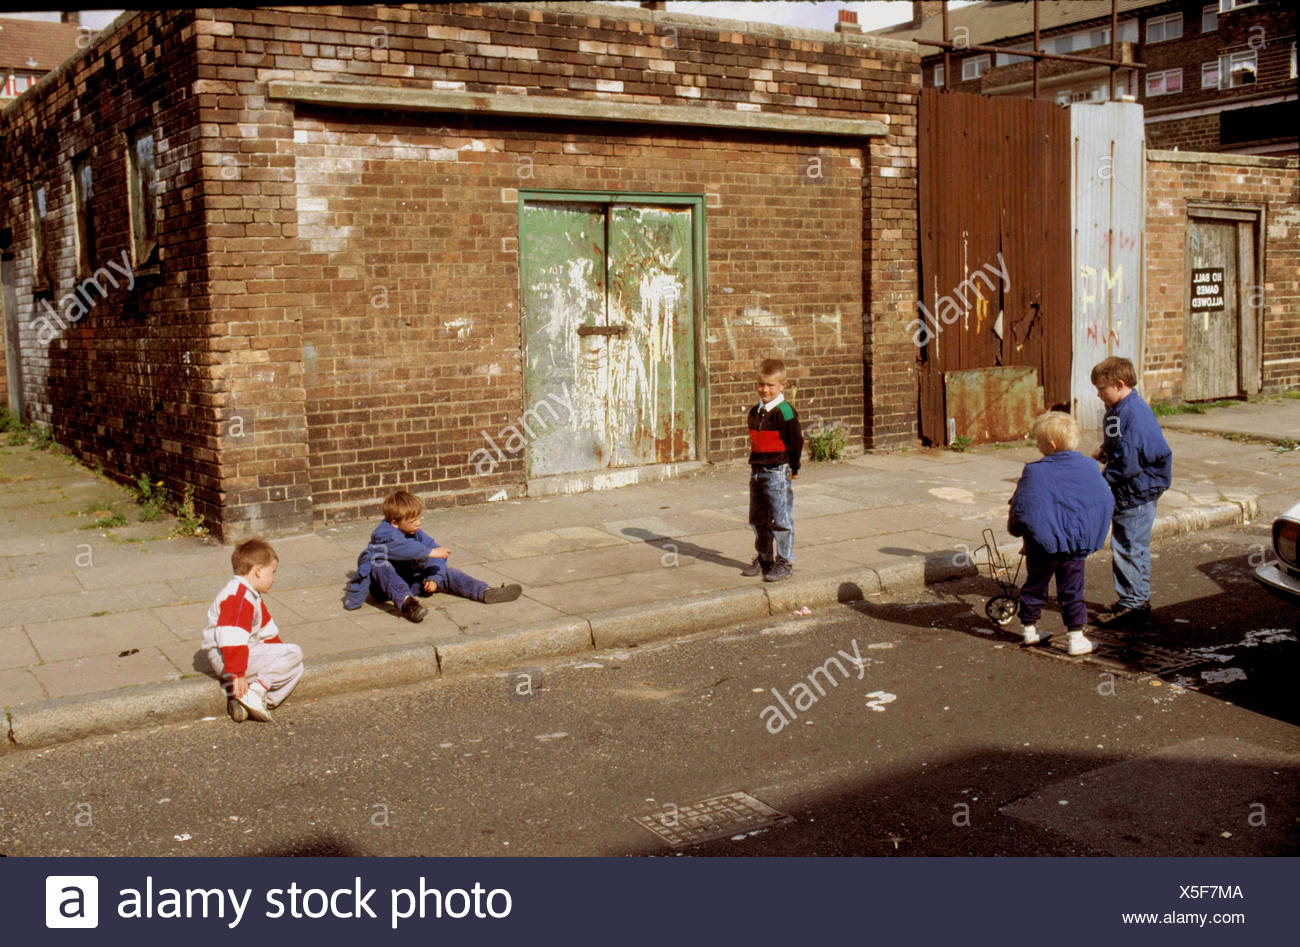 children-playing-on-the-streets-of-bradford-X5F7MA.jpg?profile=RESIZE_400x